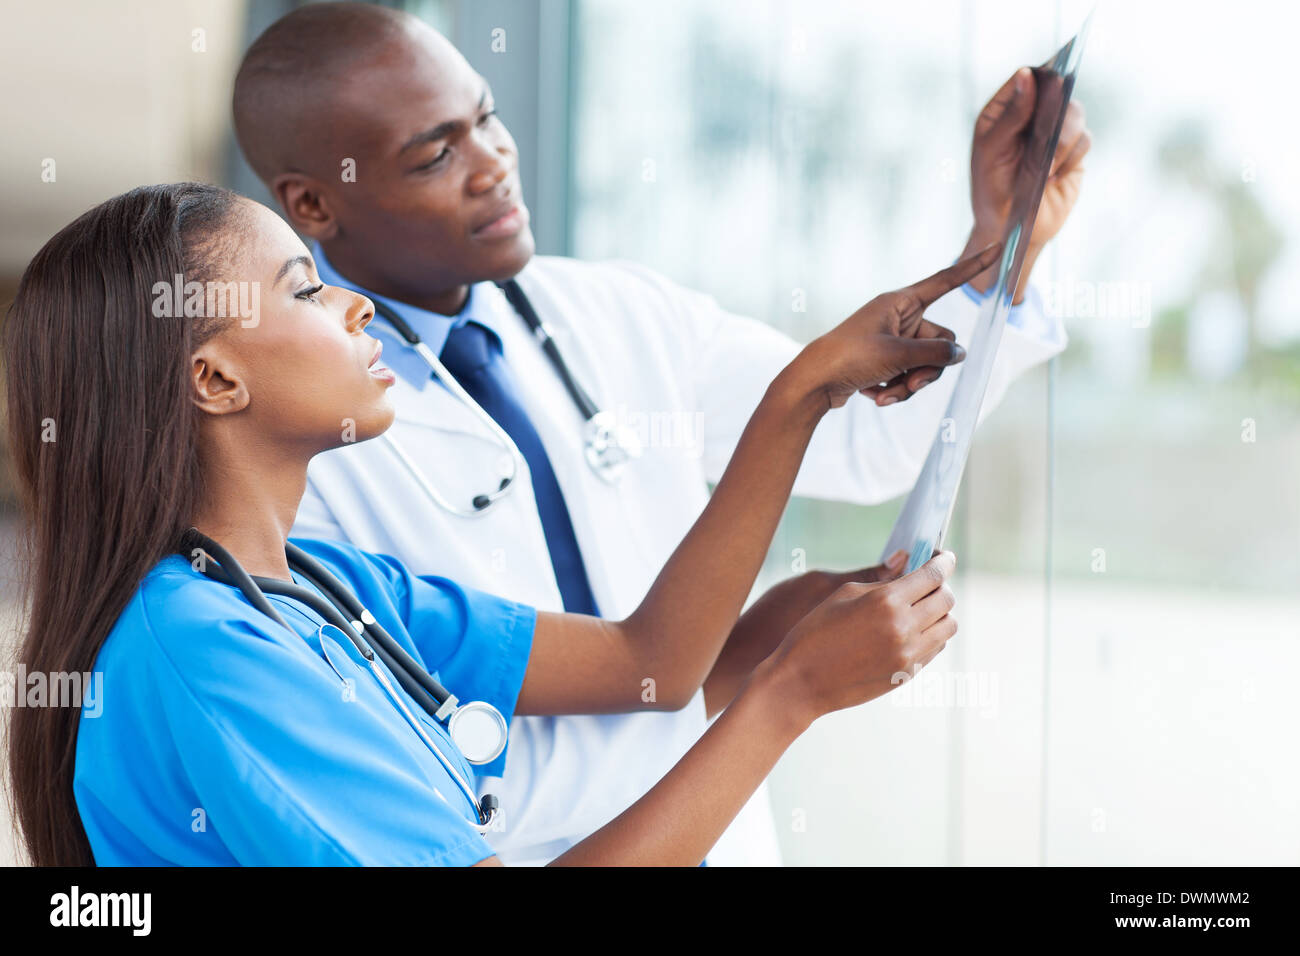 African doctors looking at patient's x-ray at hospital - Stock Image